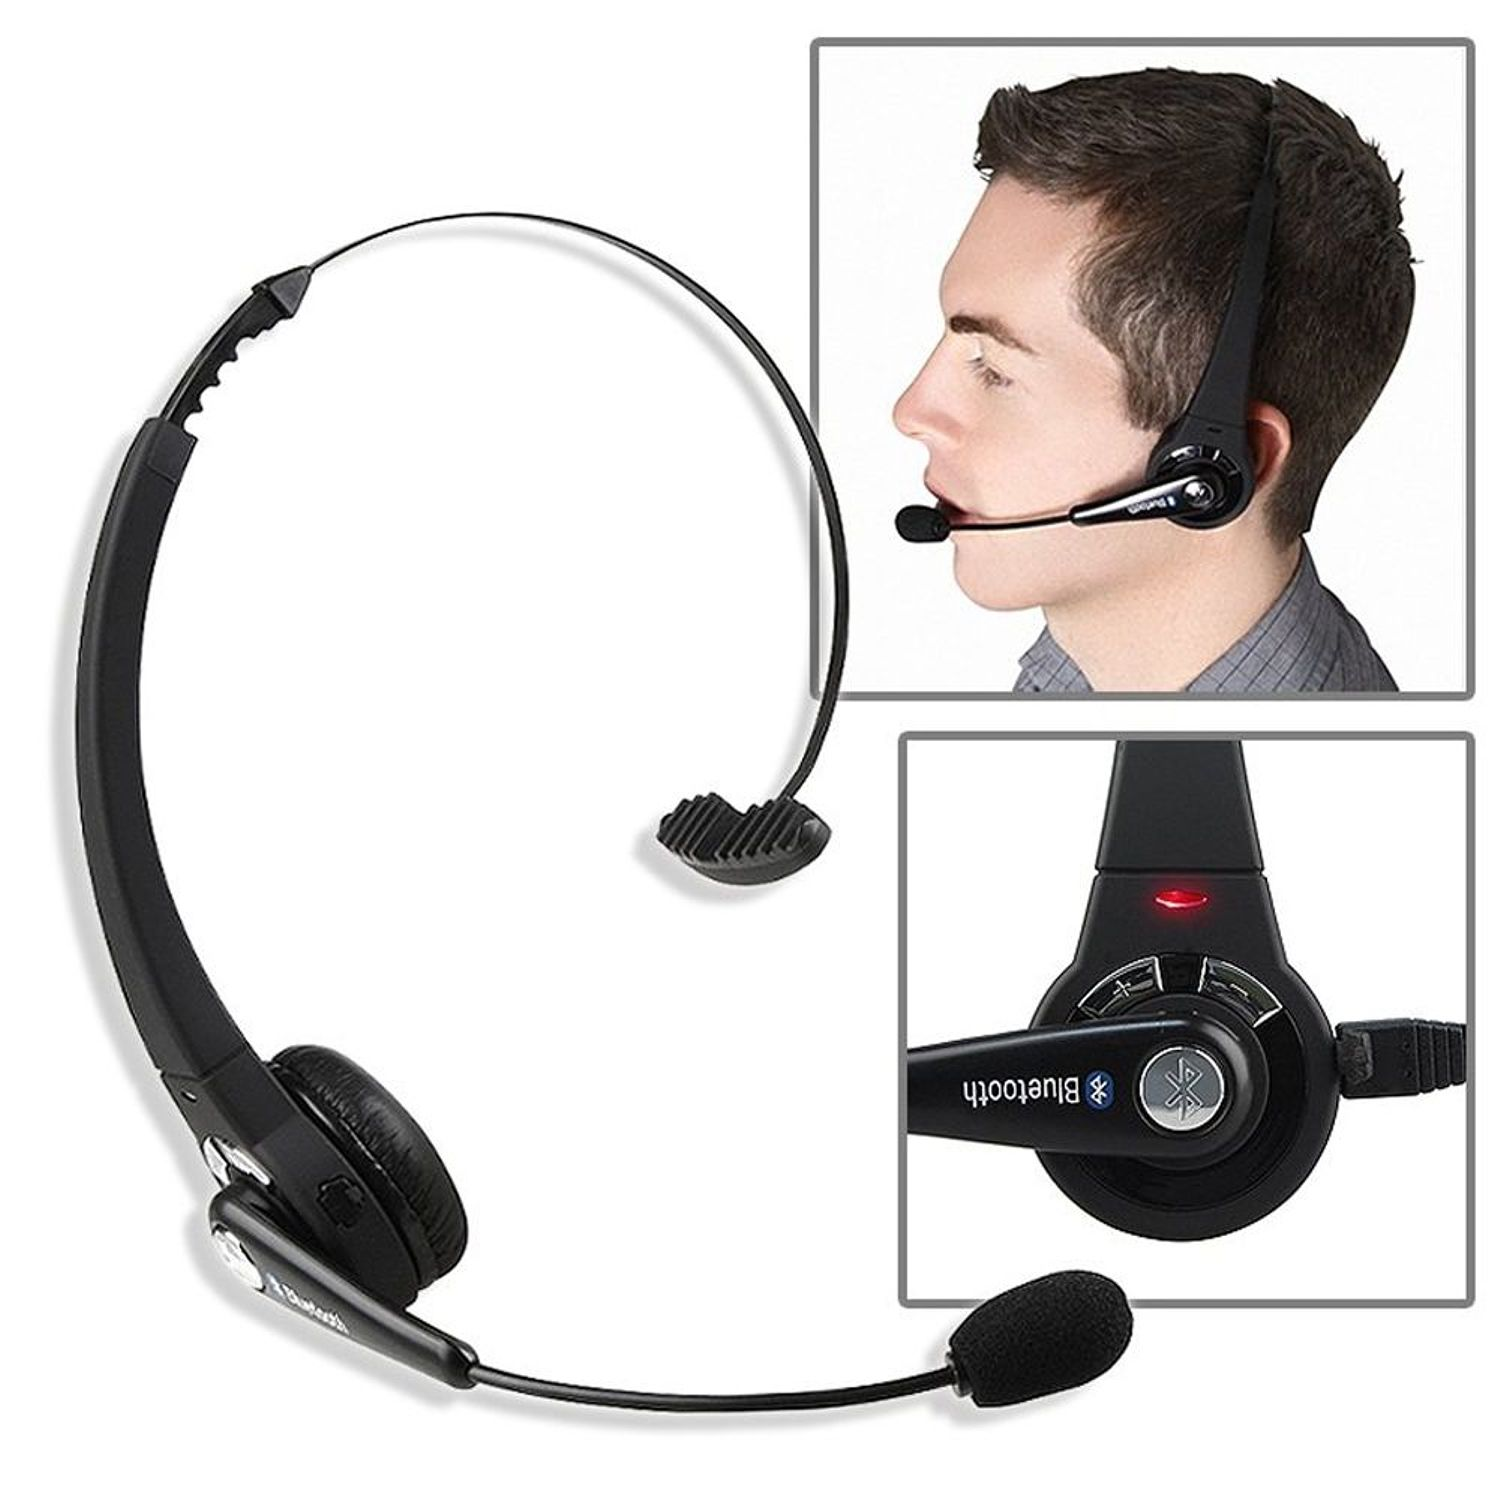 Insten Wireless bluet ooth Gaming Headset for Playstation 3 SONY PLAYSTATION 3 by Insten